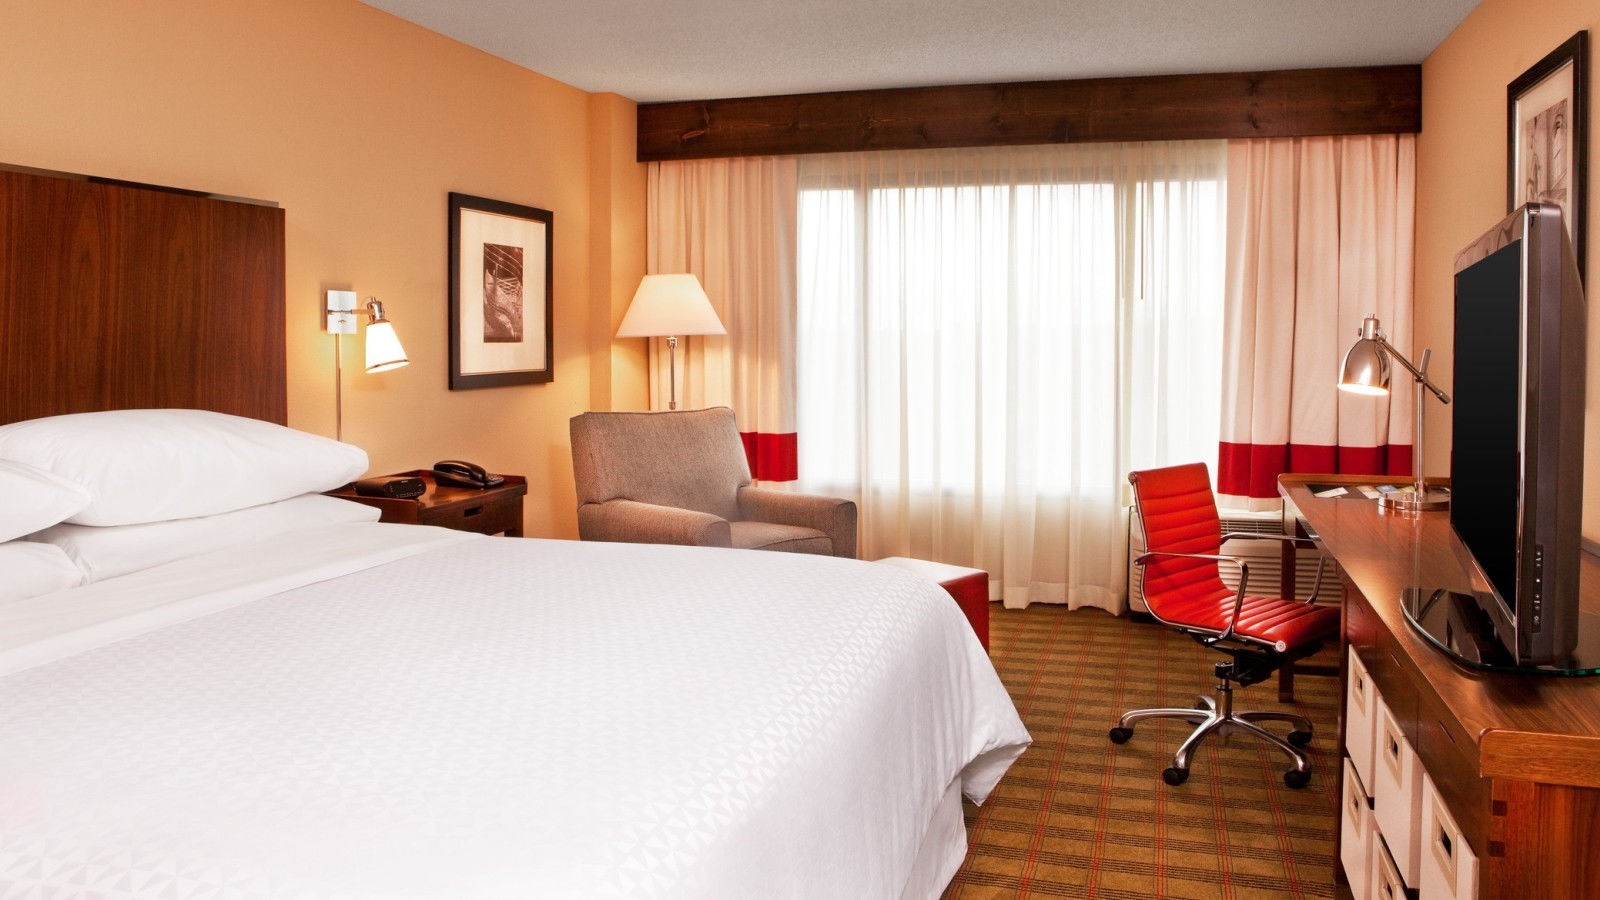 Brentwood Accommodations - King Room